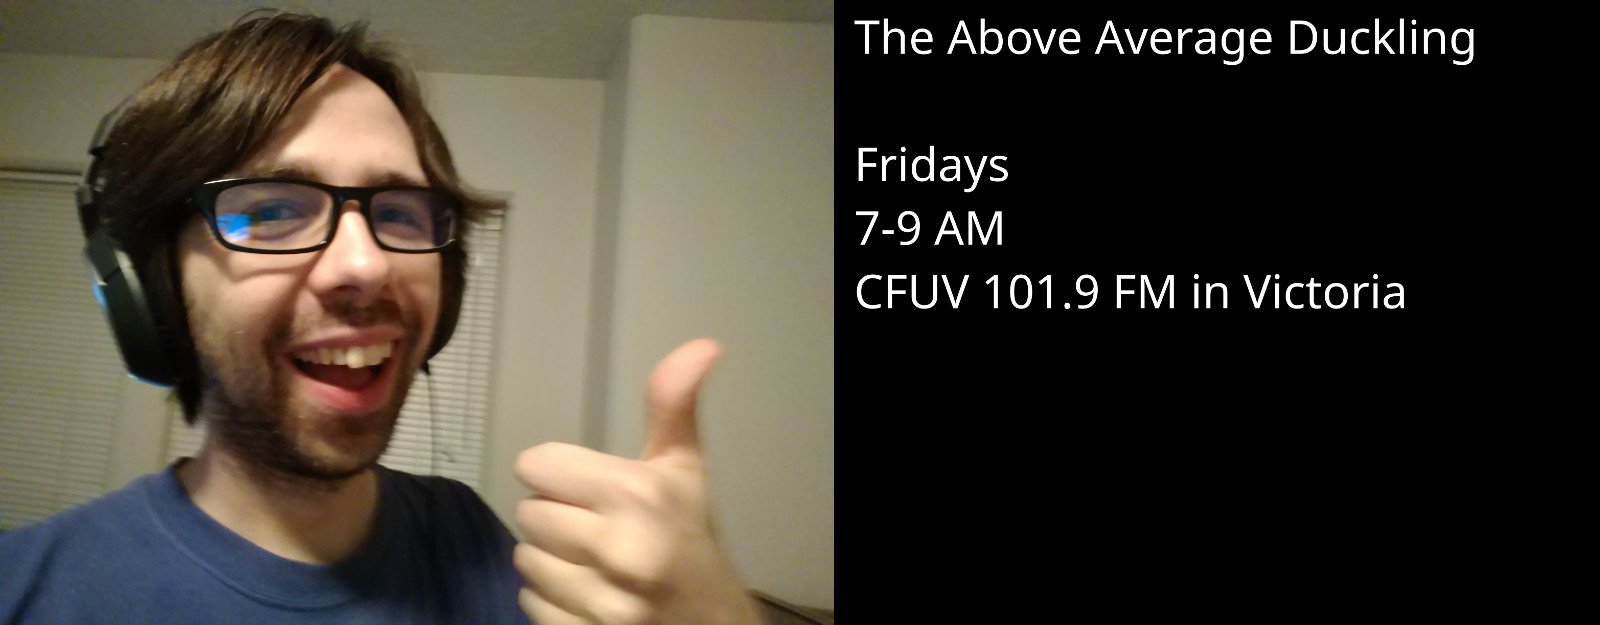 The Above Average Duckling: Fridays from 7-9 AM on CFUV 101.9 FM in Victoria